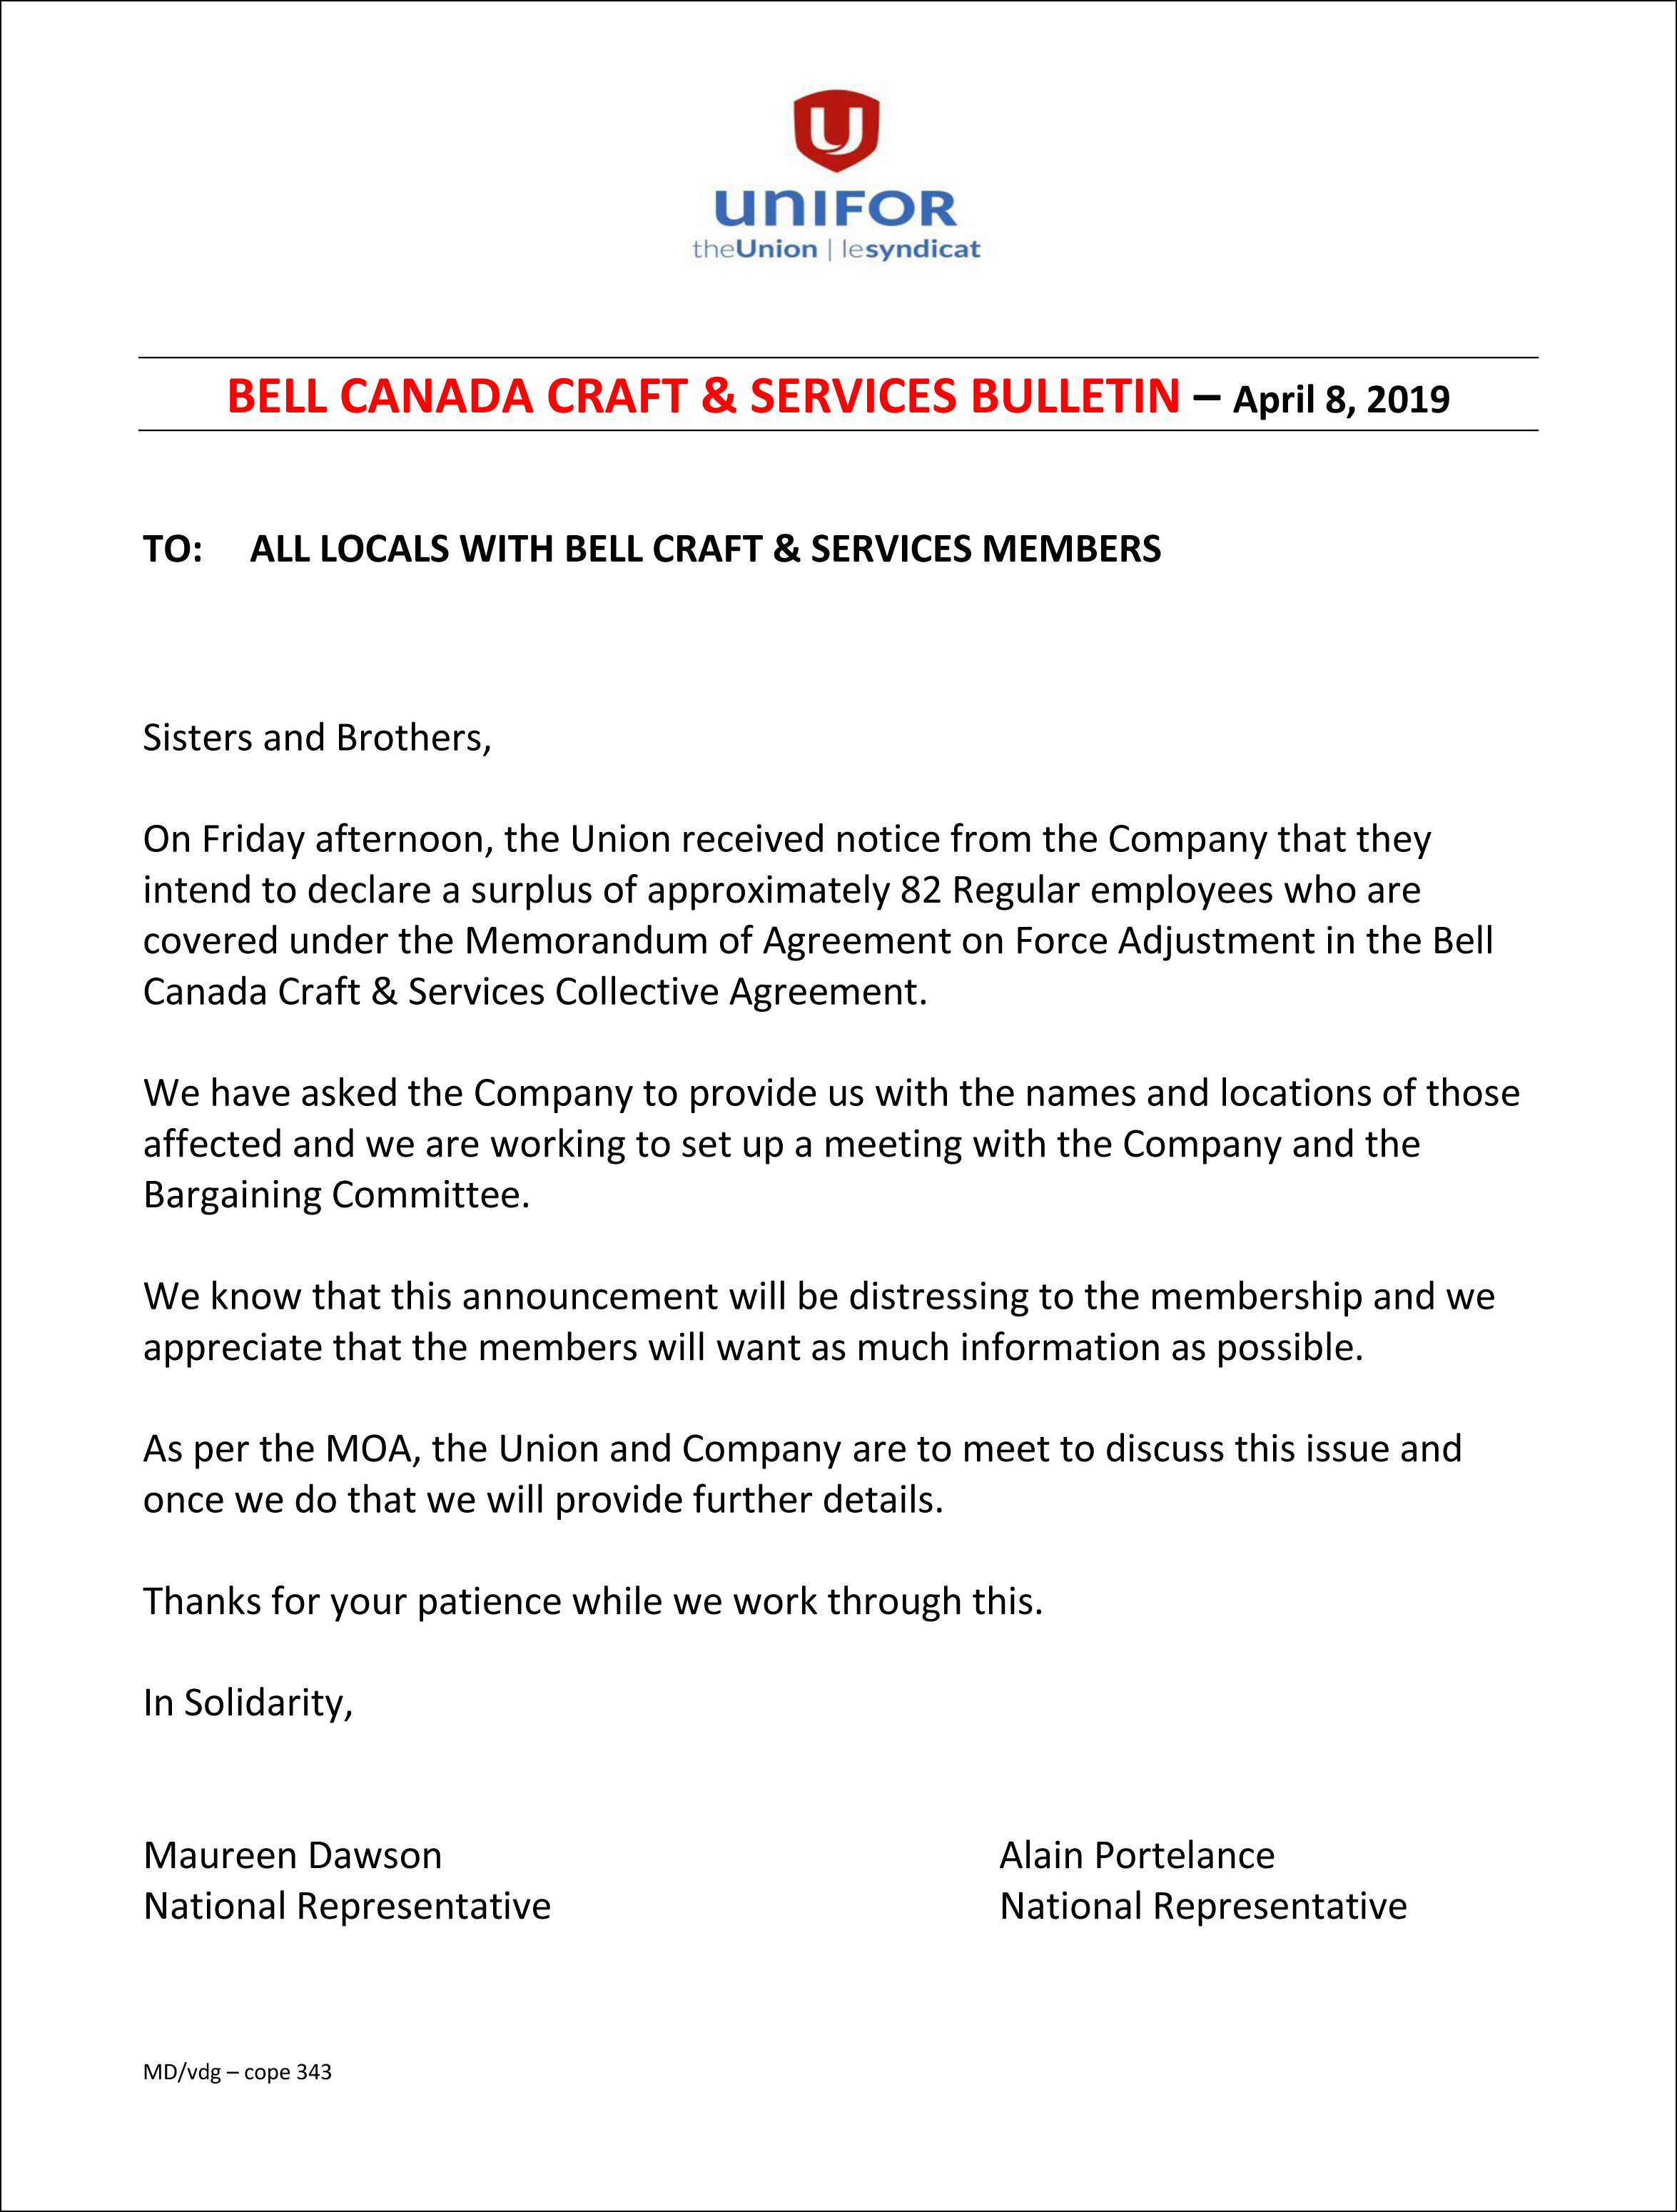 Bell Canada Craft Services Bulletin -  April 2019.jpg